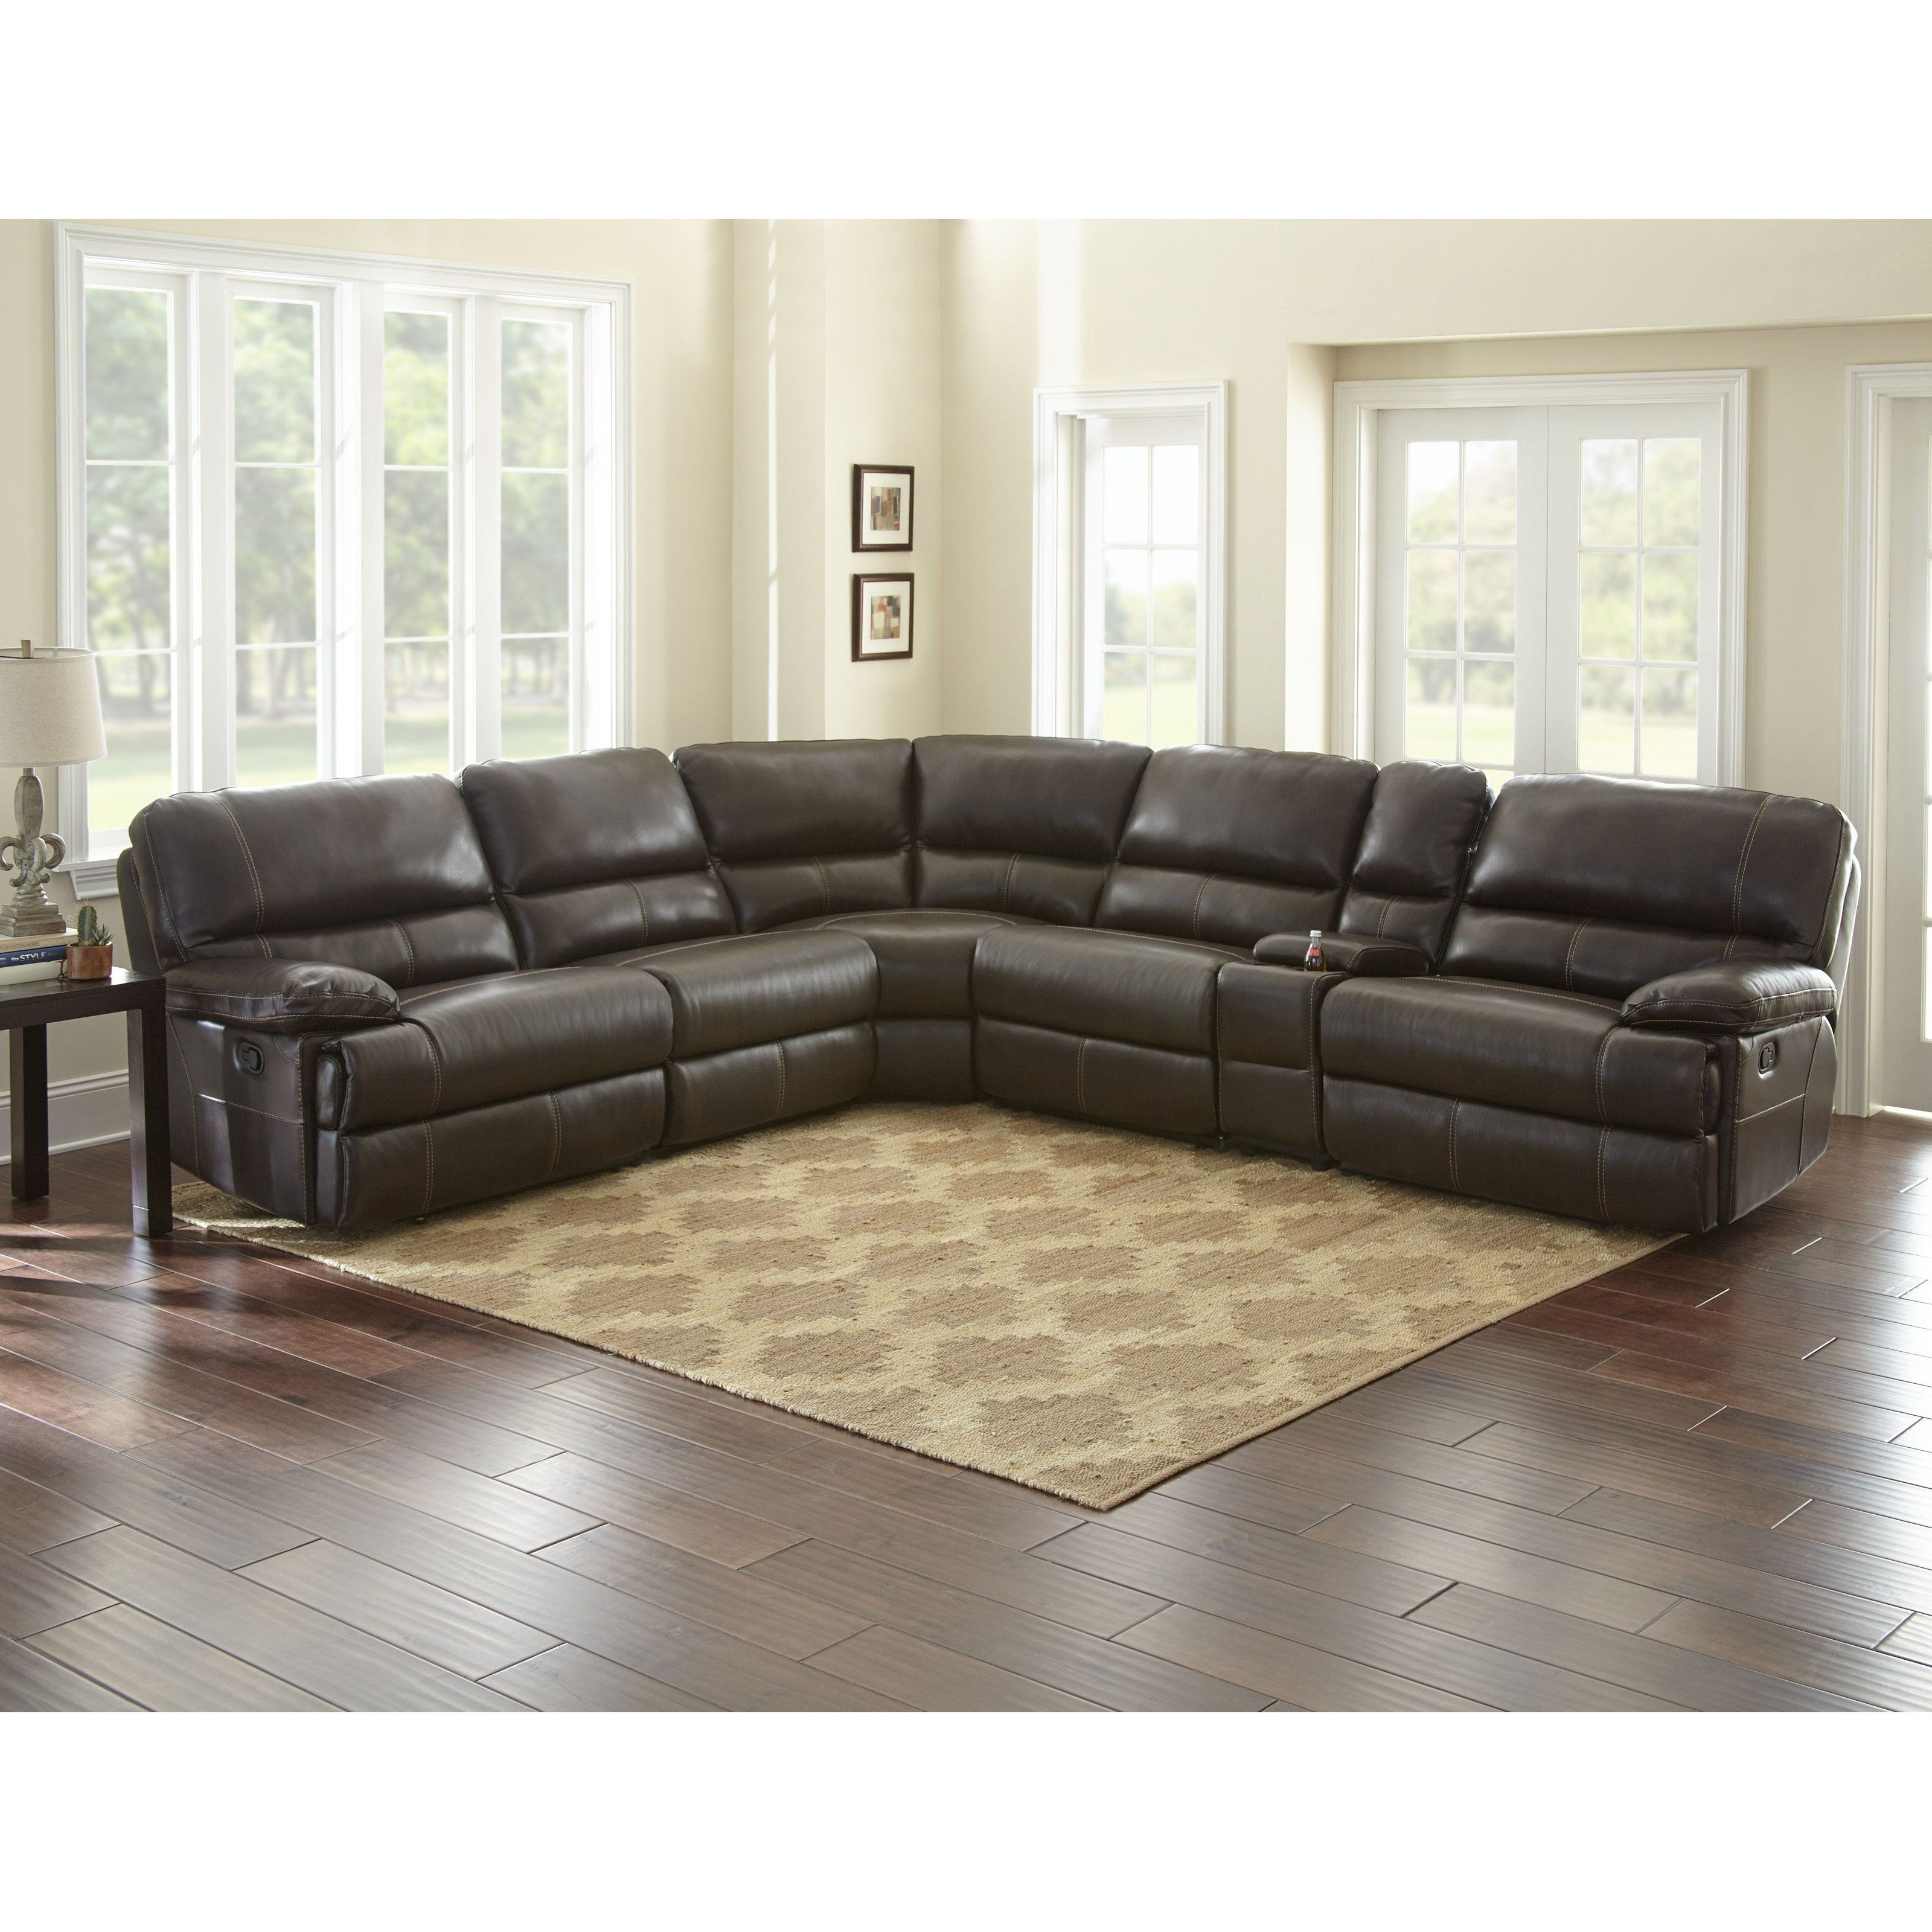 Steve Silver Co. Rollins 6 Piece Reclining Sectional - Rl8506Pc with regard to Kristen Silver Grey 6 Piece Power Reclining Sectionals (Image 27 of 30)